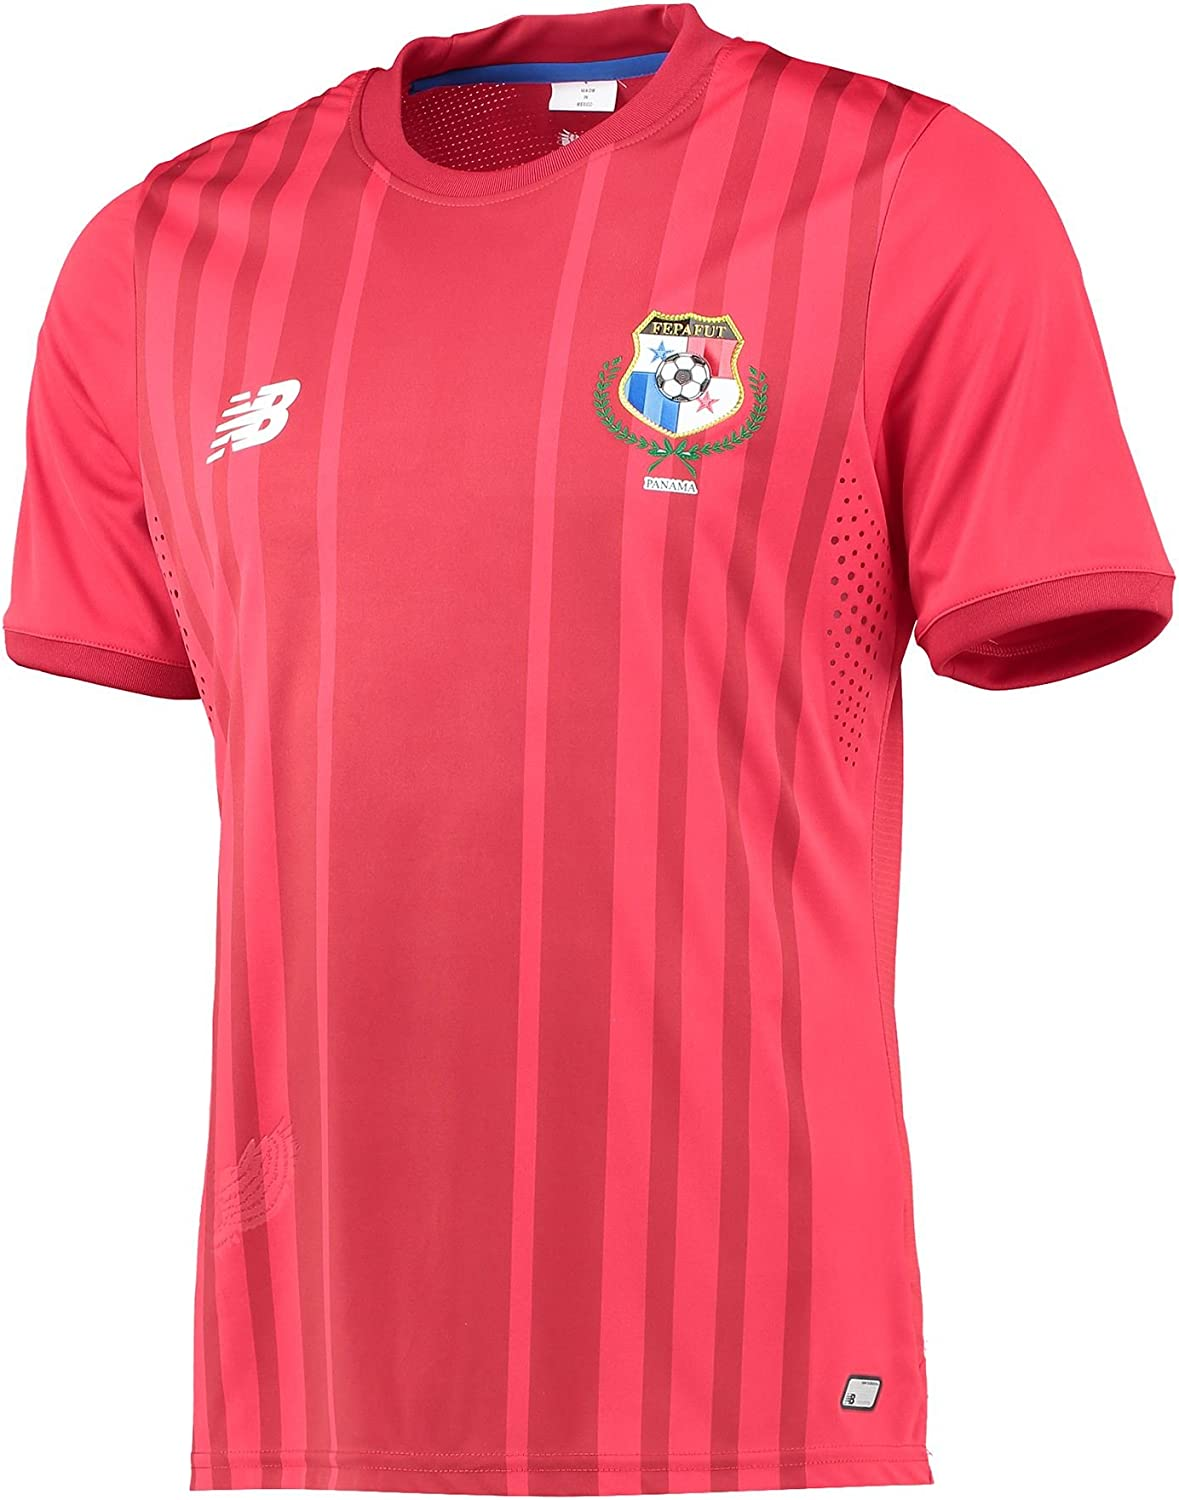 Panama Home Jersey (Red)